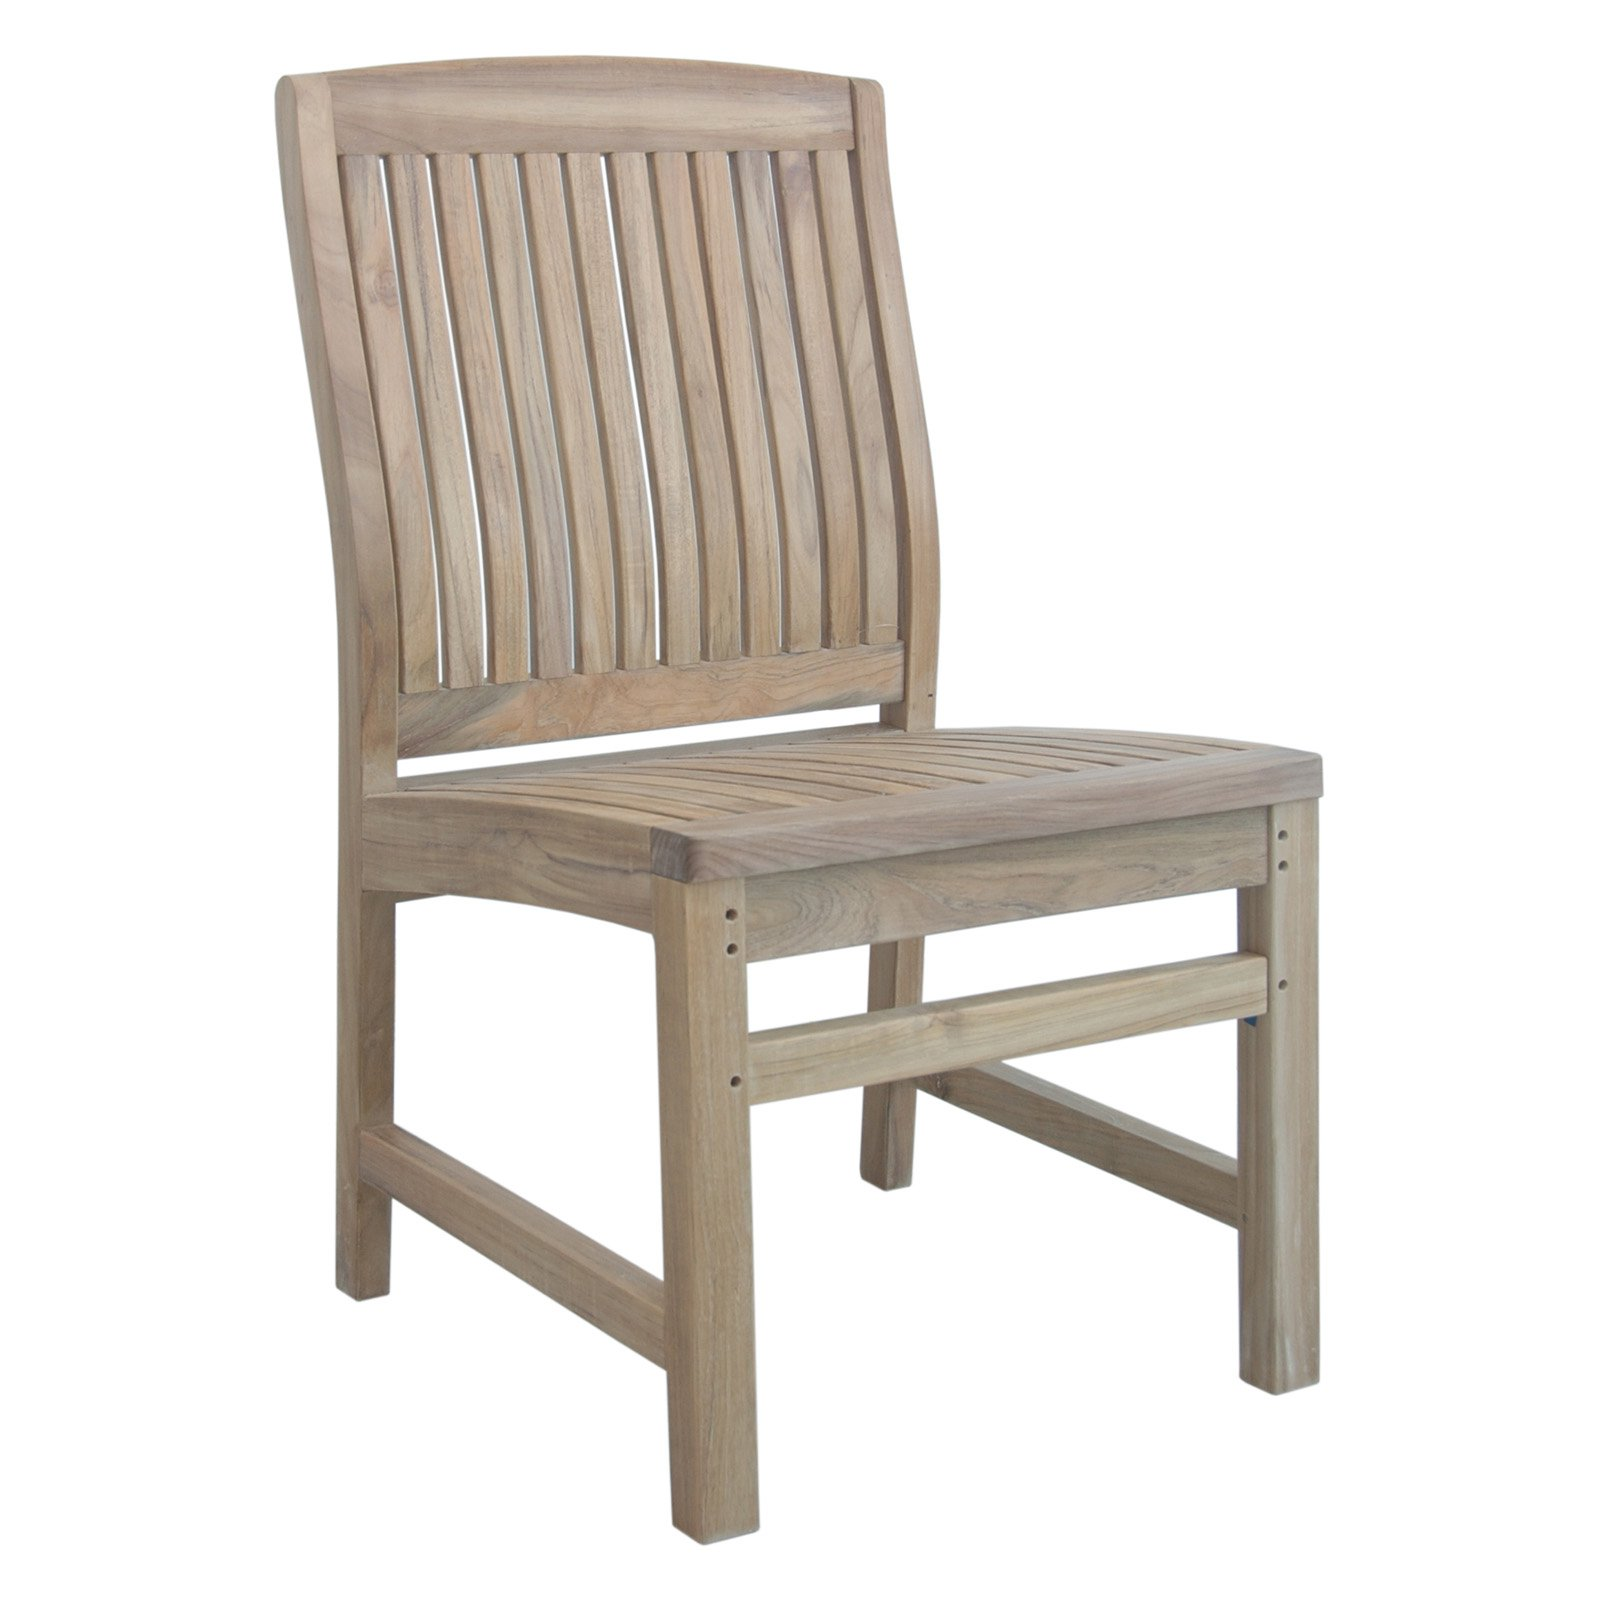 Anderson Teak Sahara Outdoor Dining Side Chair by Anderson Teak